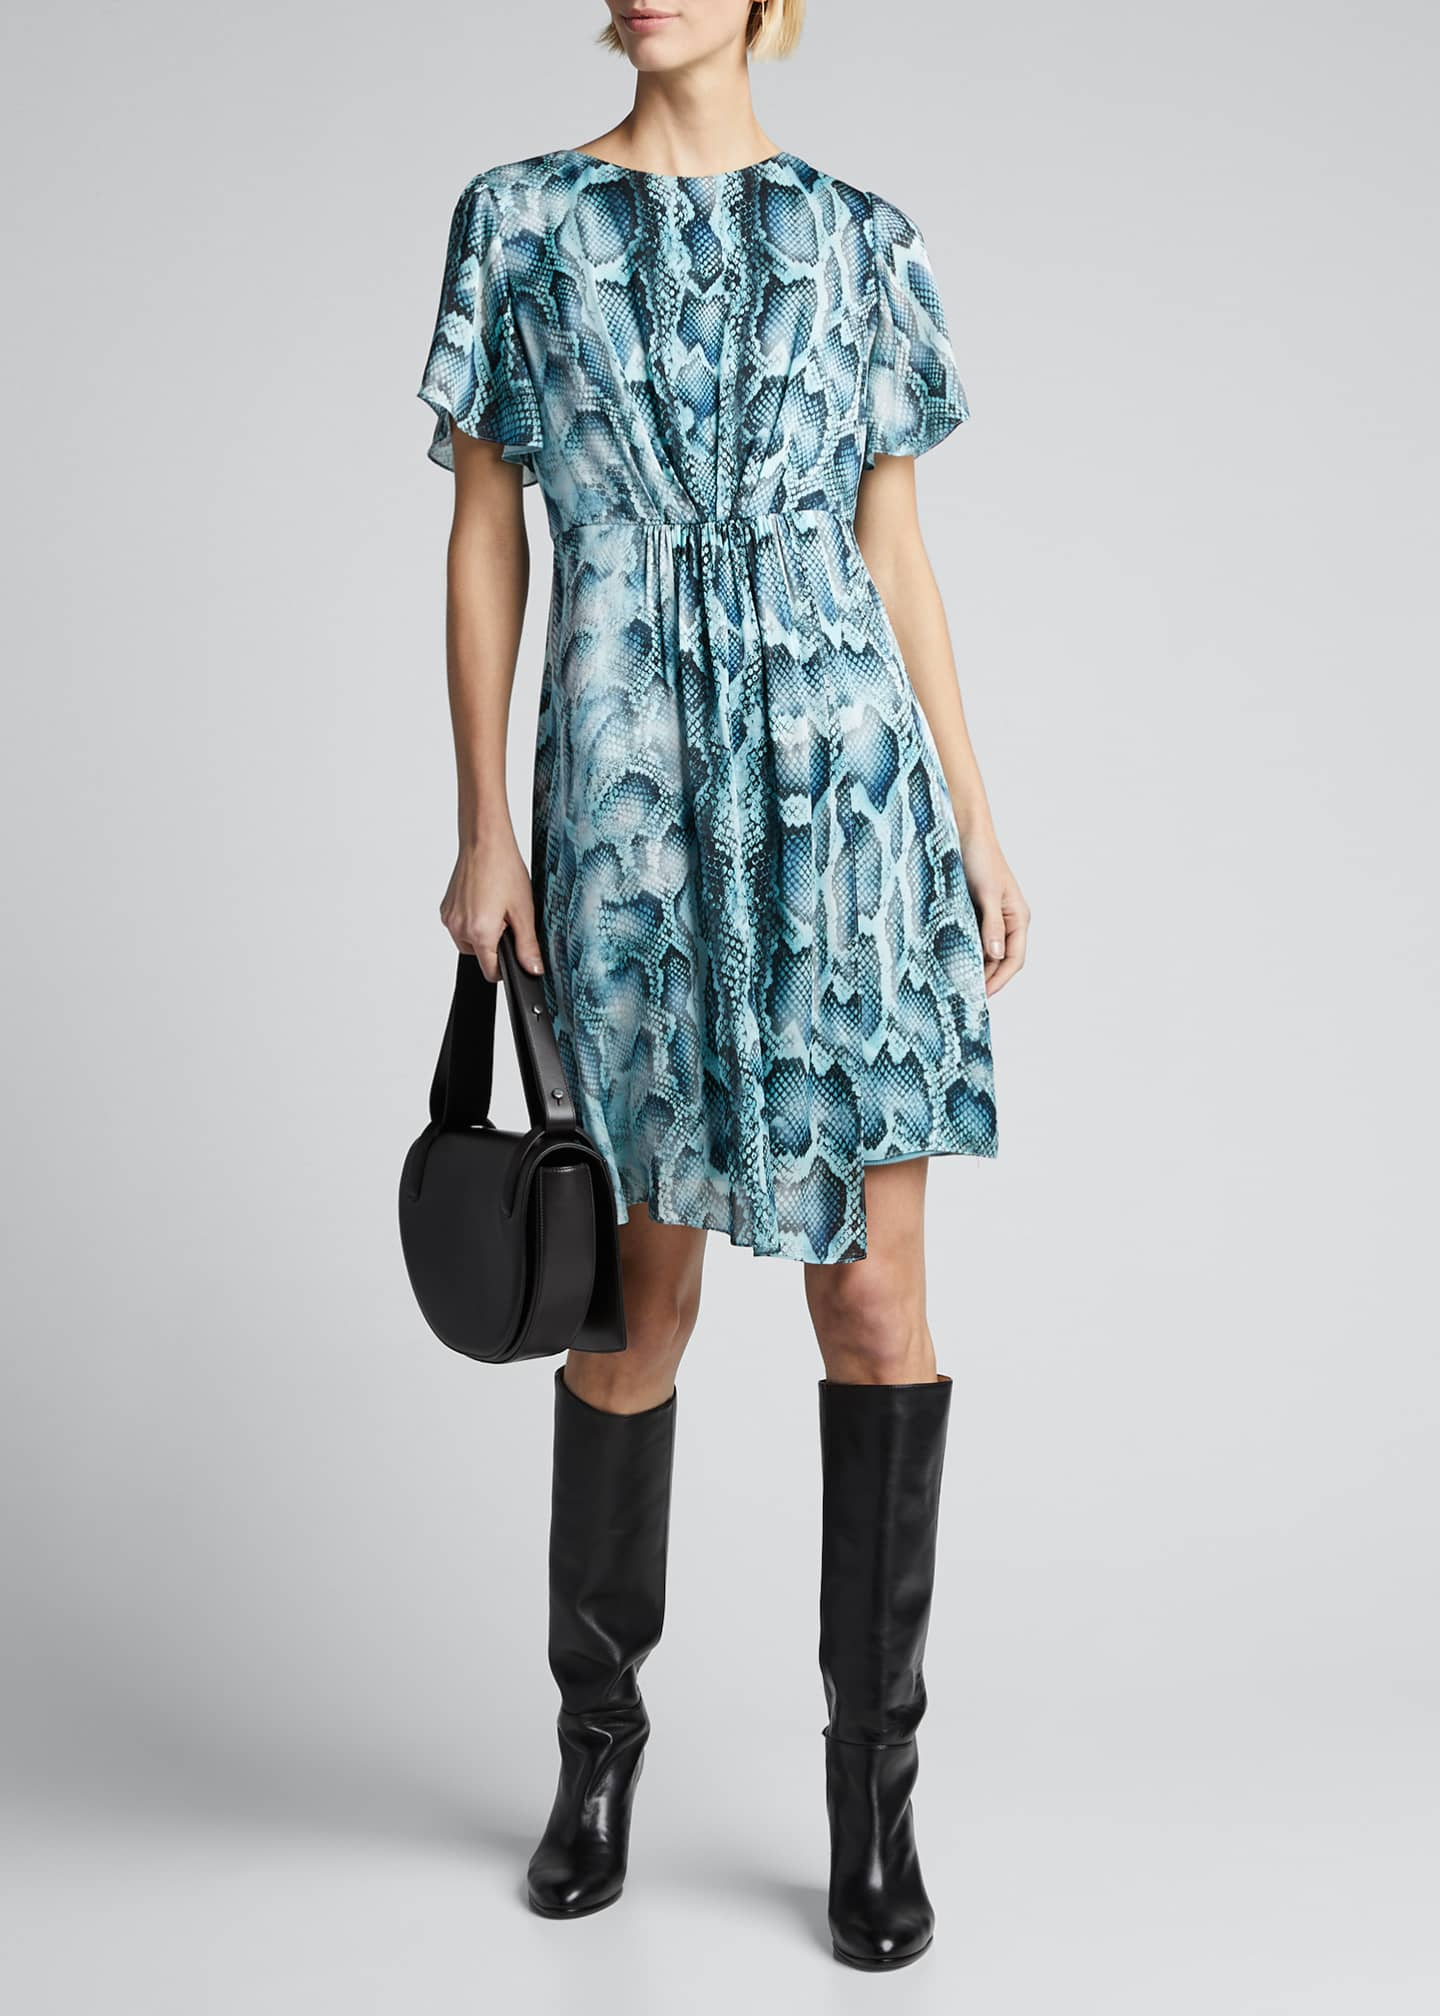 Elie Tahari Dia Snake-Print Flutter-Sleeve Silk Dress